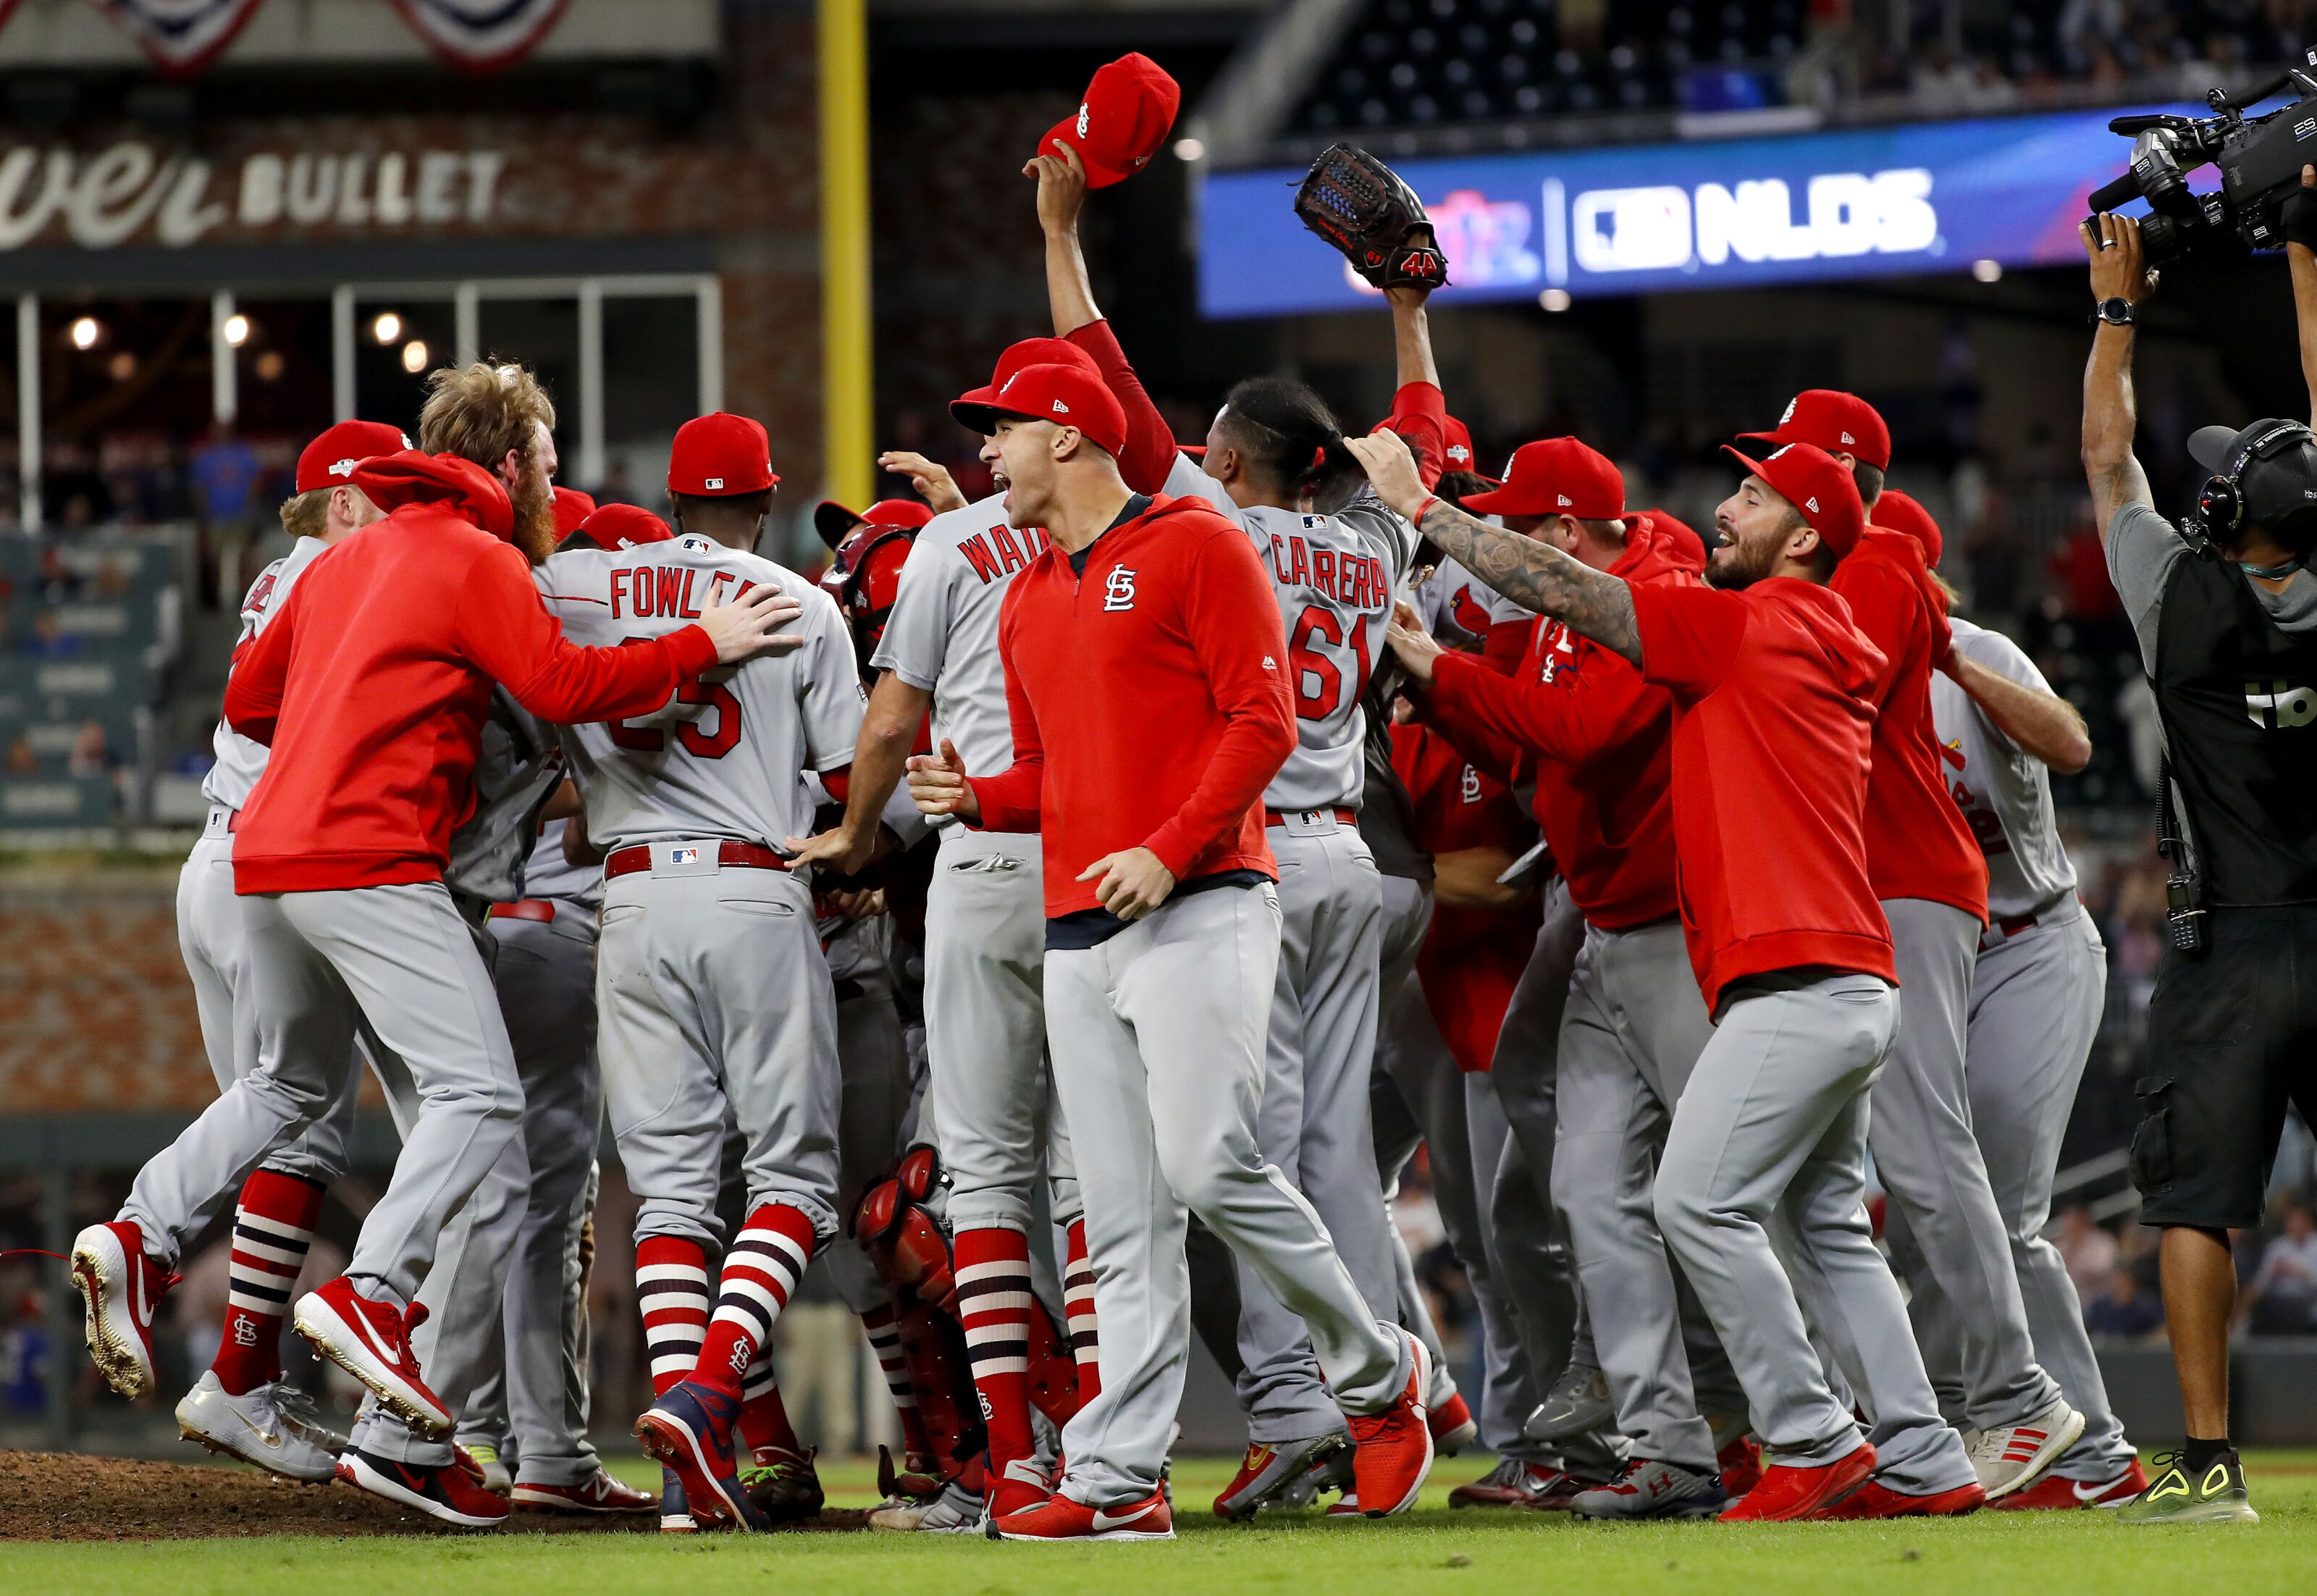 St. Louis Cardinals: The team is sticking with what worked for the NLCS